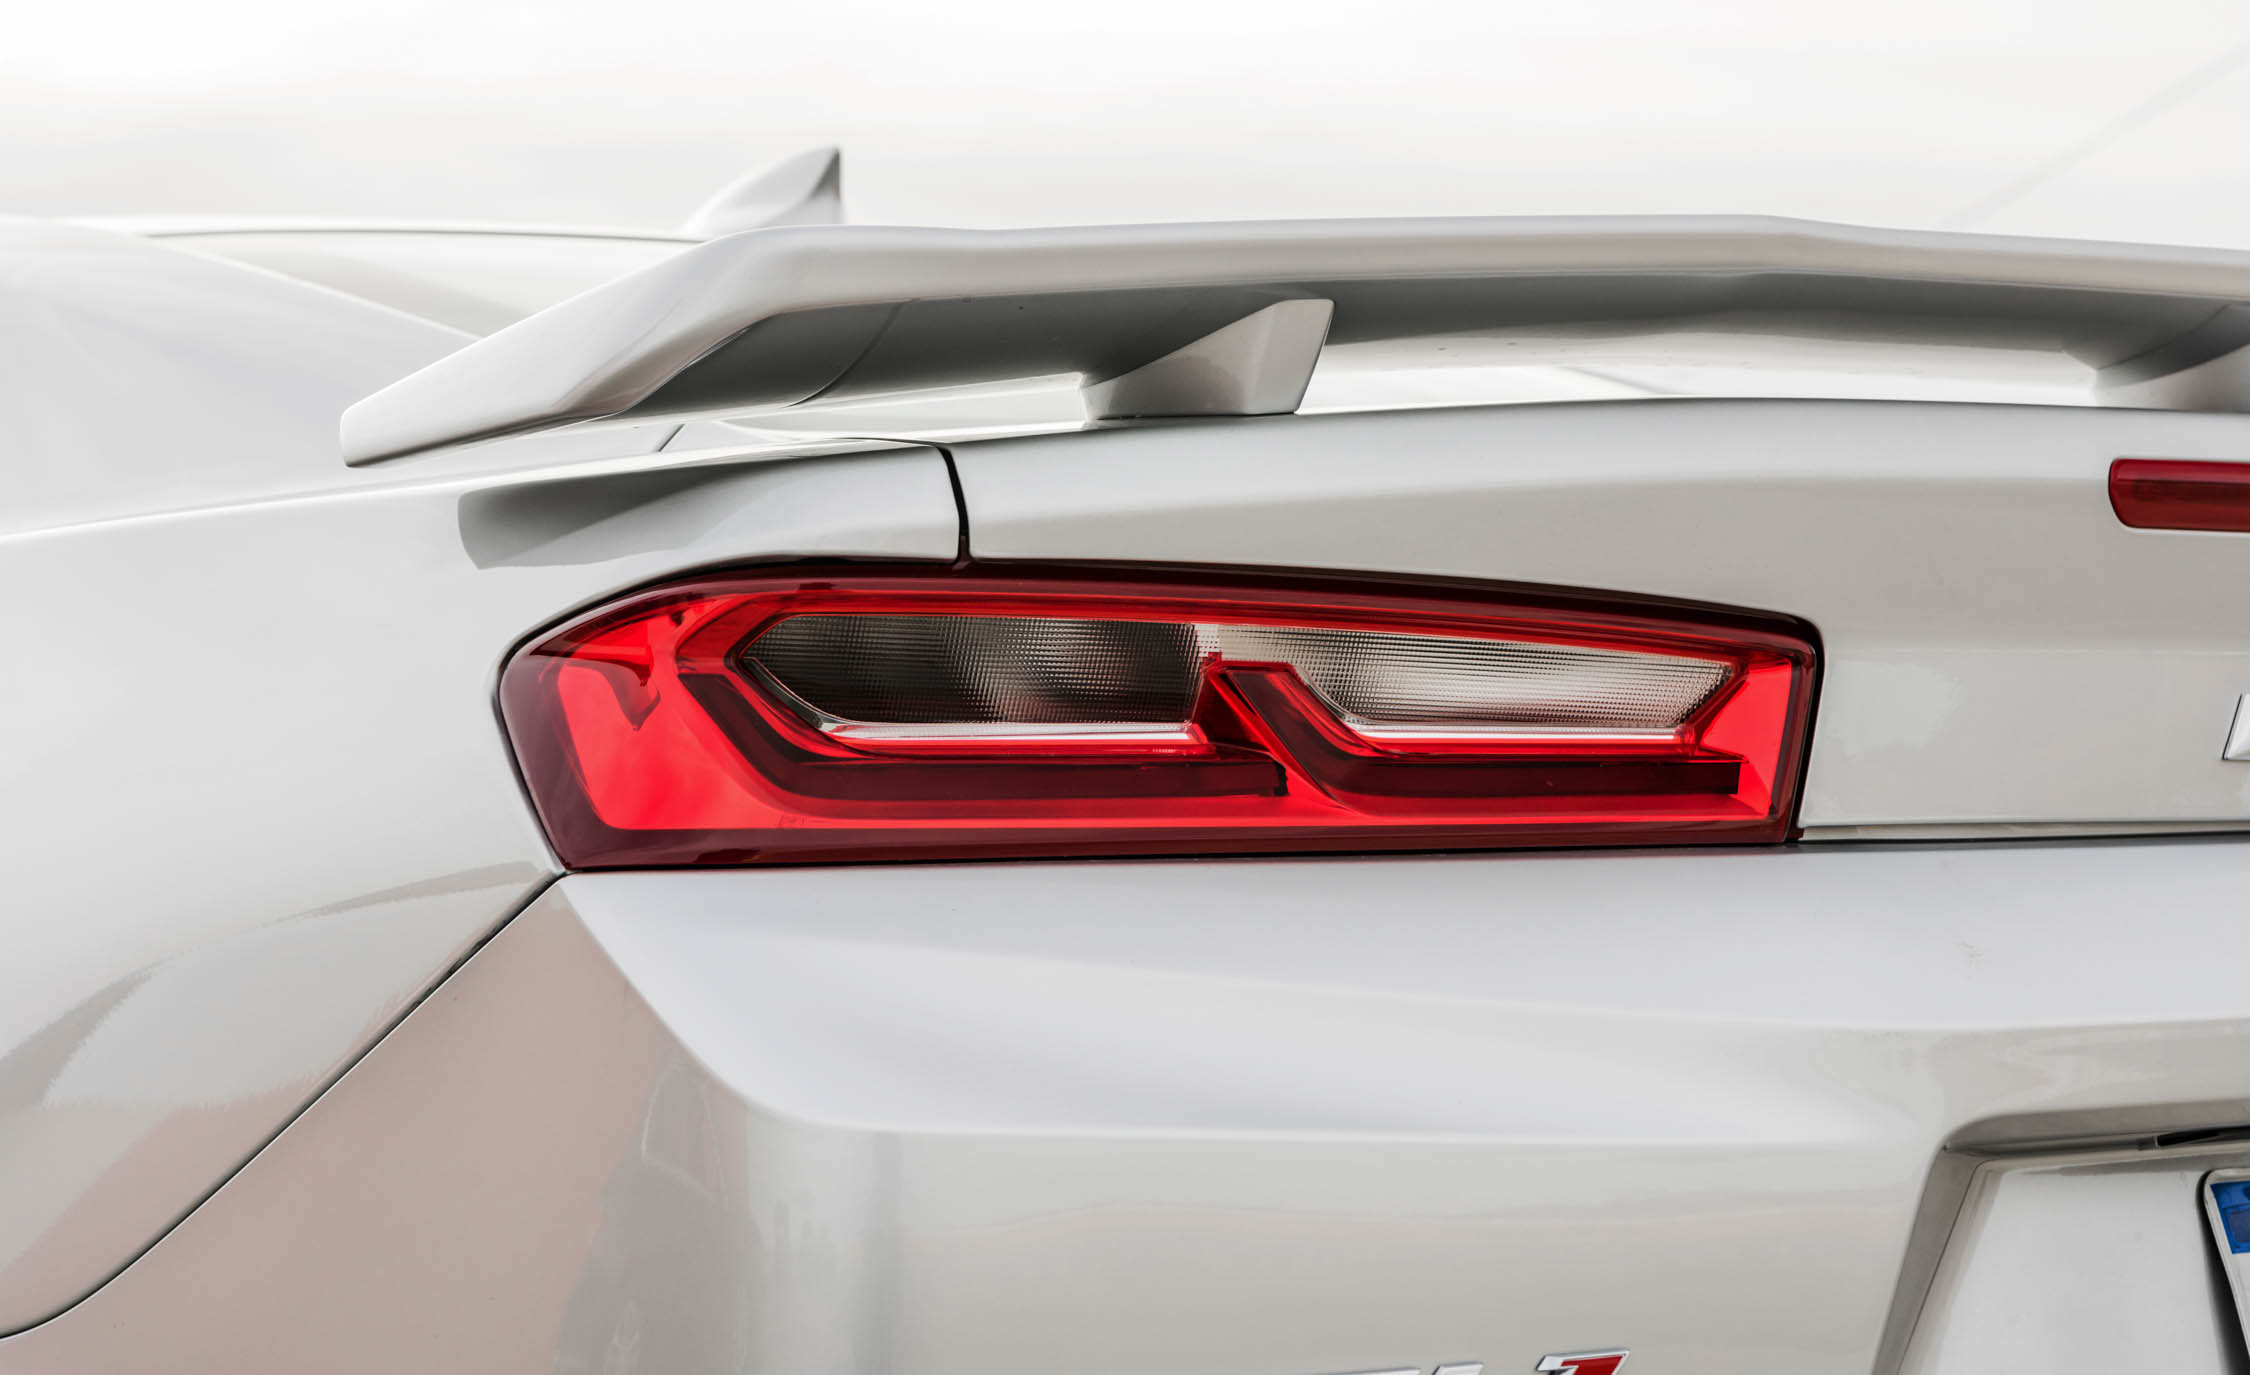 2017 Chevrolet Camaro ZL1 White Exterior View Taillight (Photo 54 of 62)